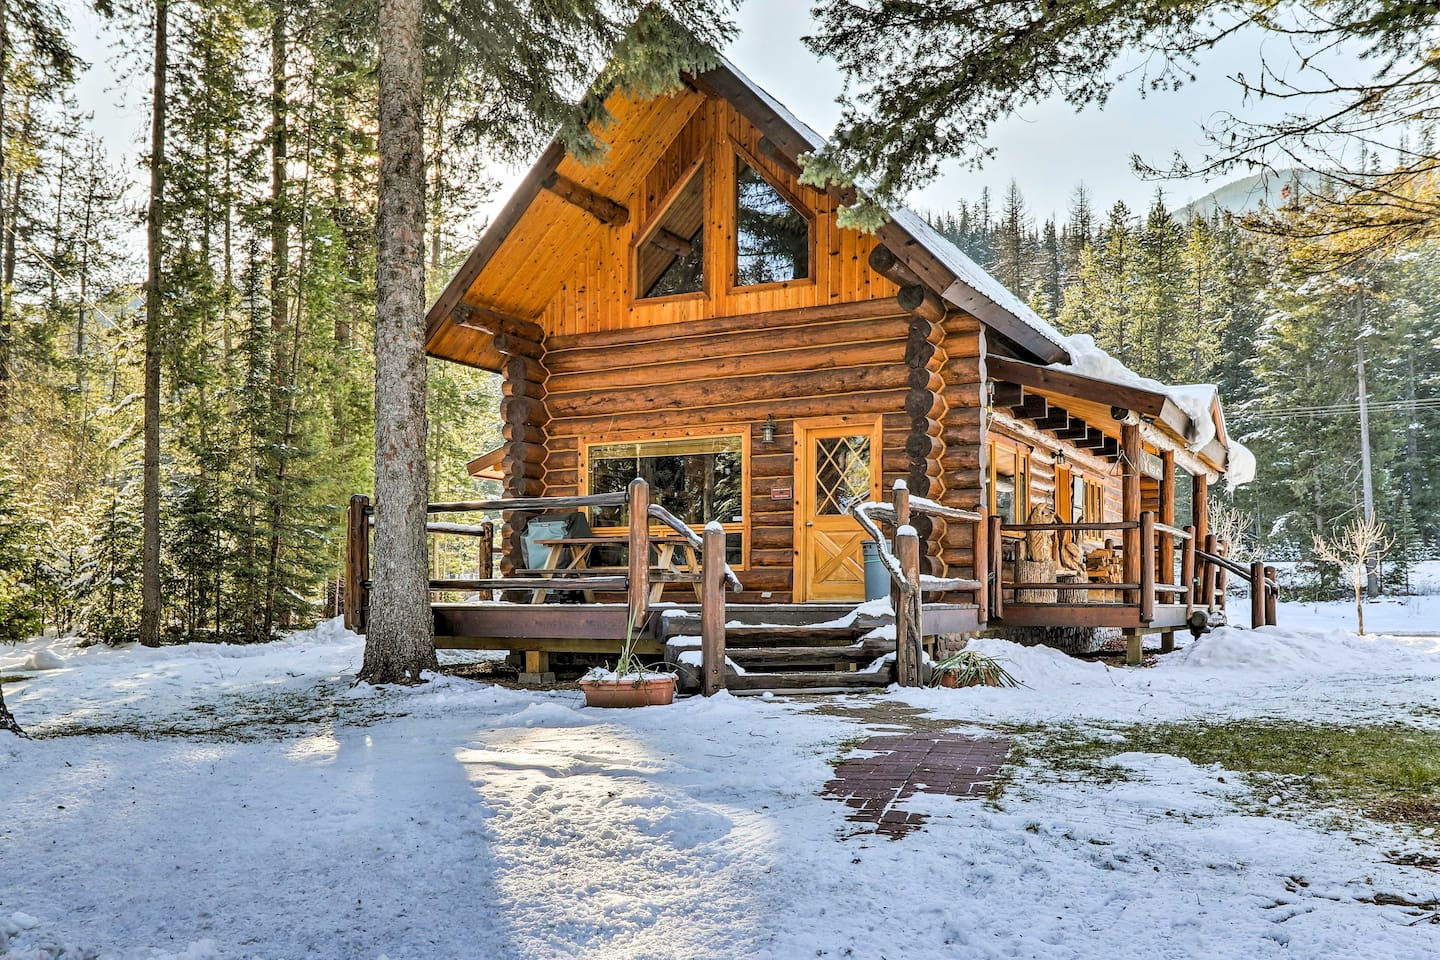 cr in fire for i nm cabins angel sale